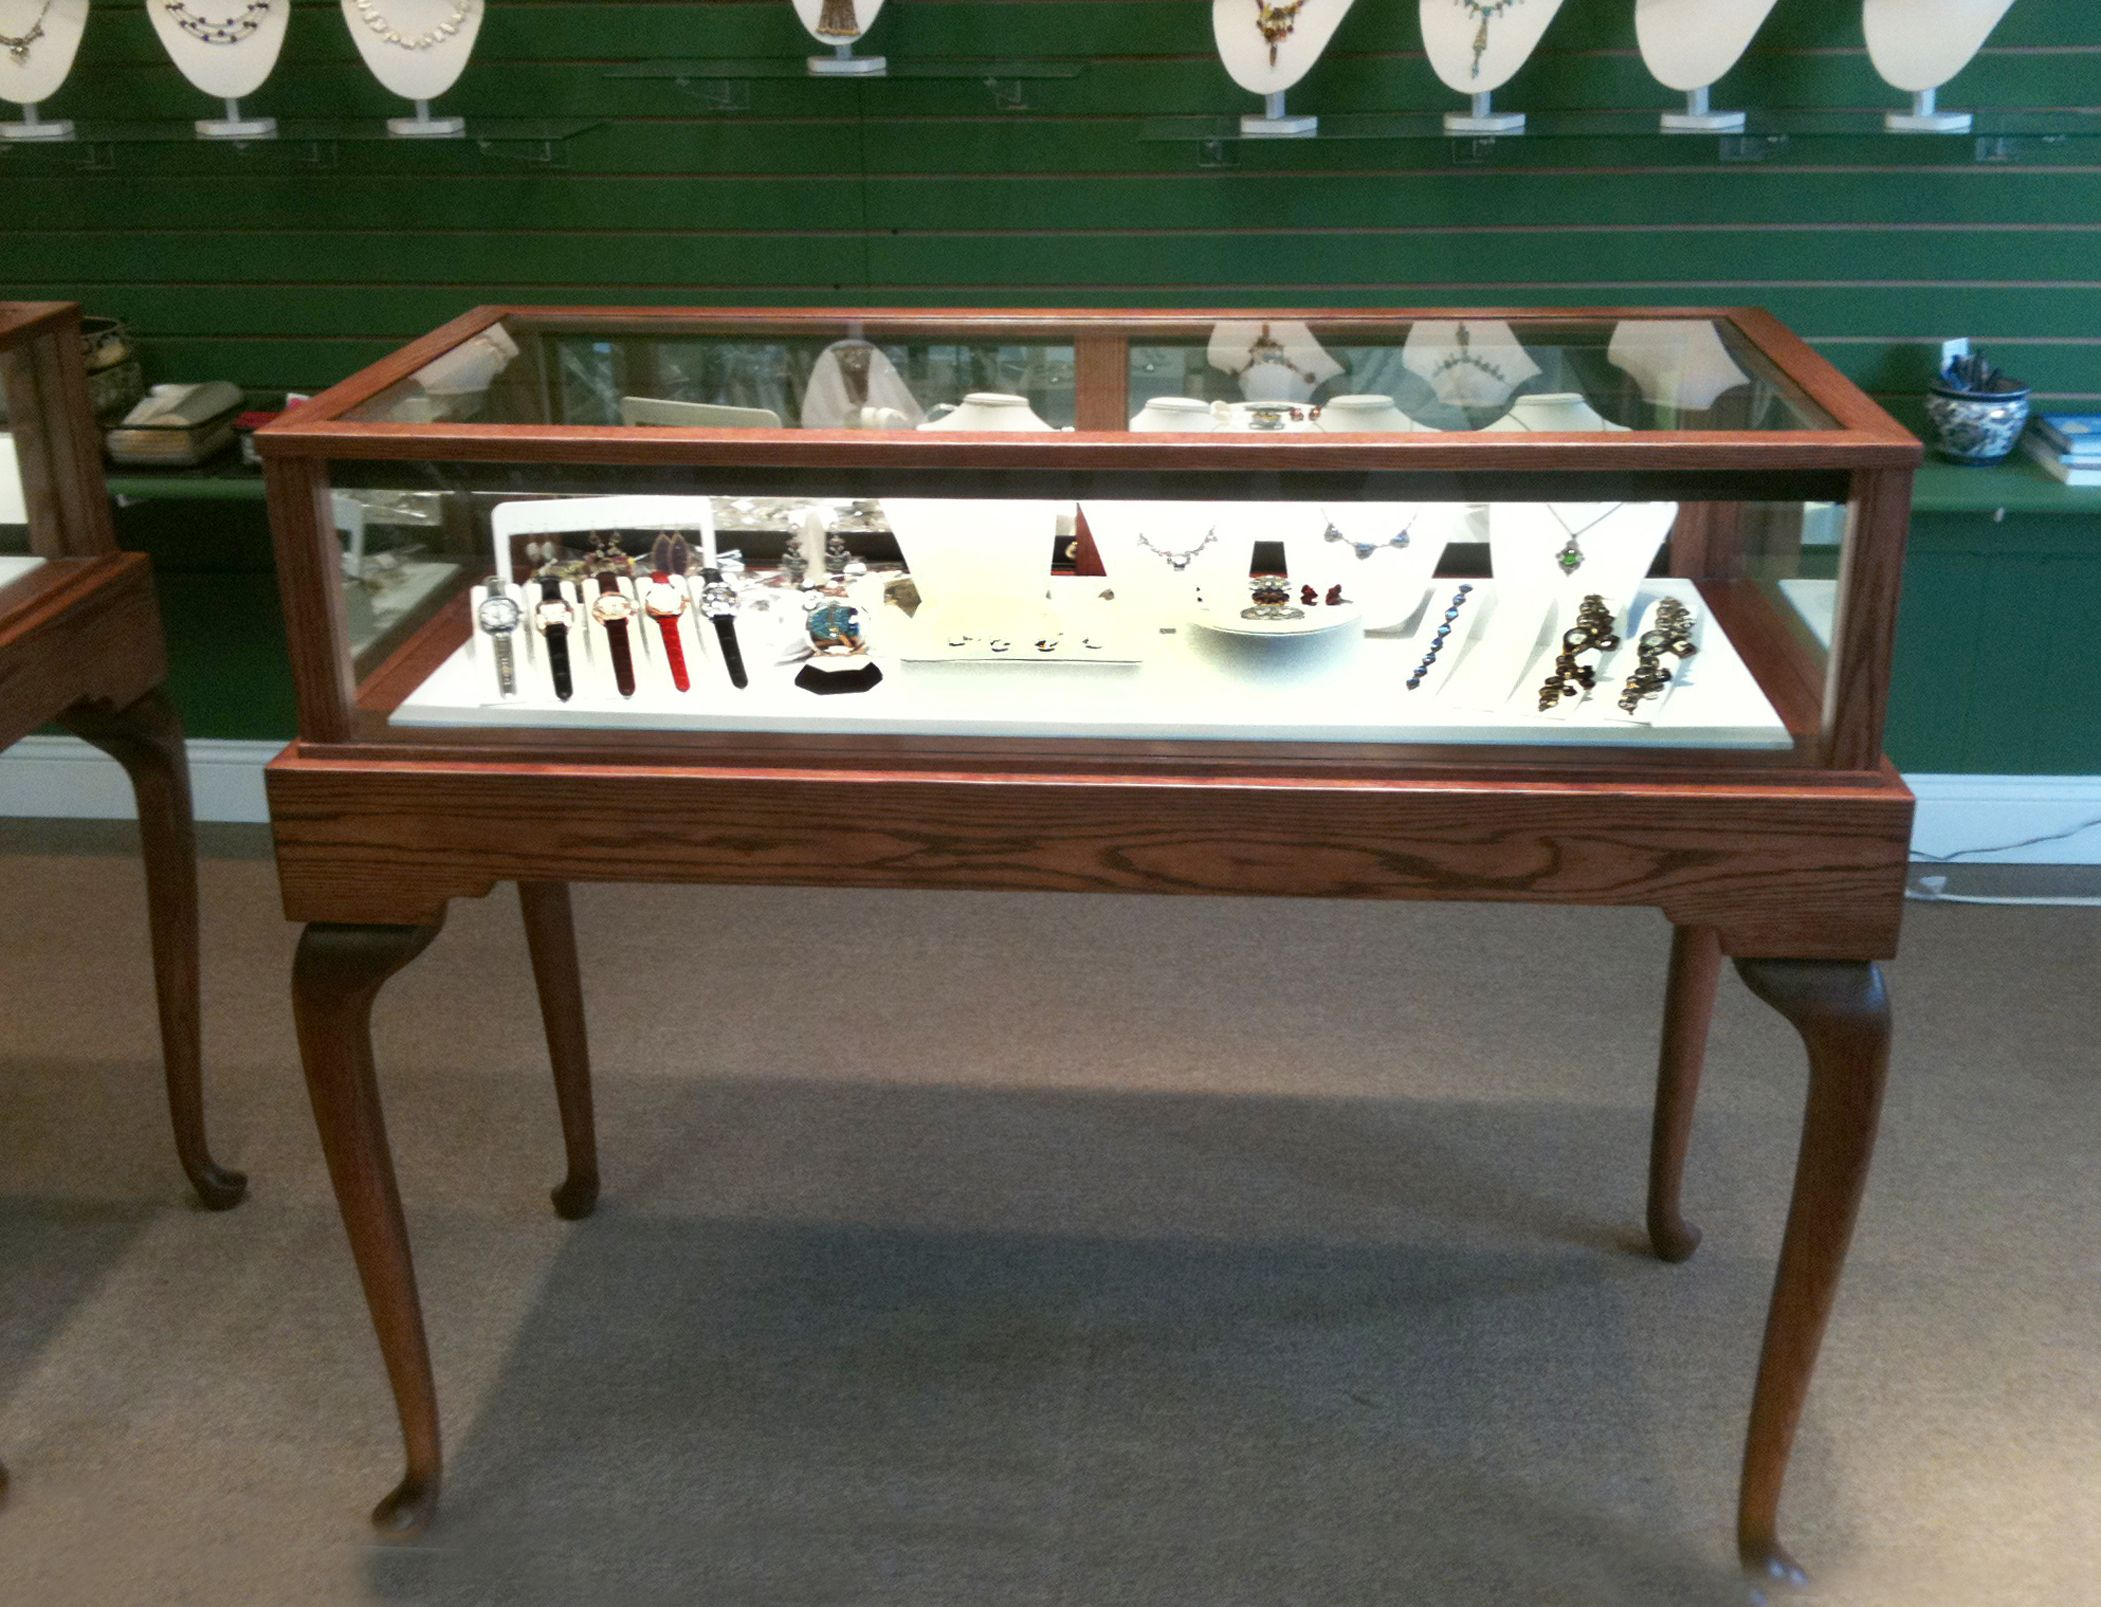 """The display cases are beautiful! We love the cordovon cherry stain on red oak with the white leatherette deck pad. Here are a couple of photos of the units."" -- Canary International, Inc., Farmington, MI   -   Gloria Hsu, Partner   5/1/2012."